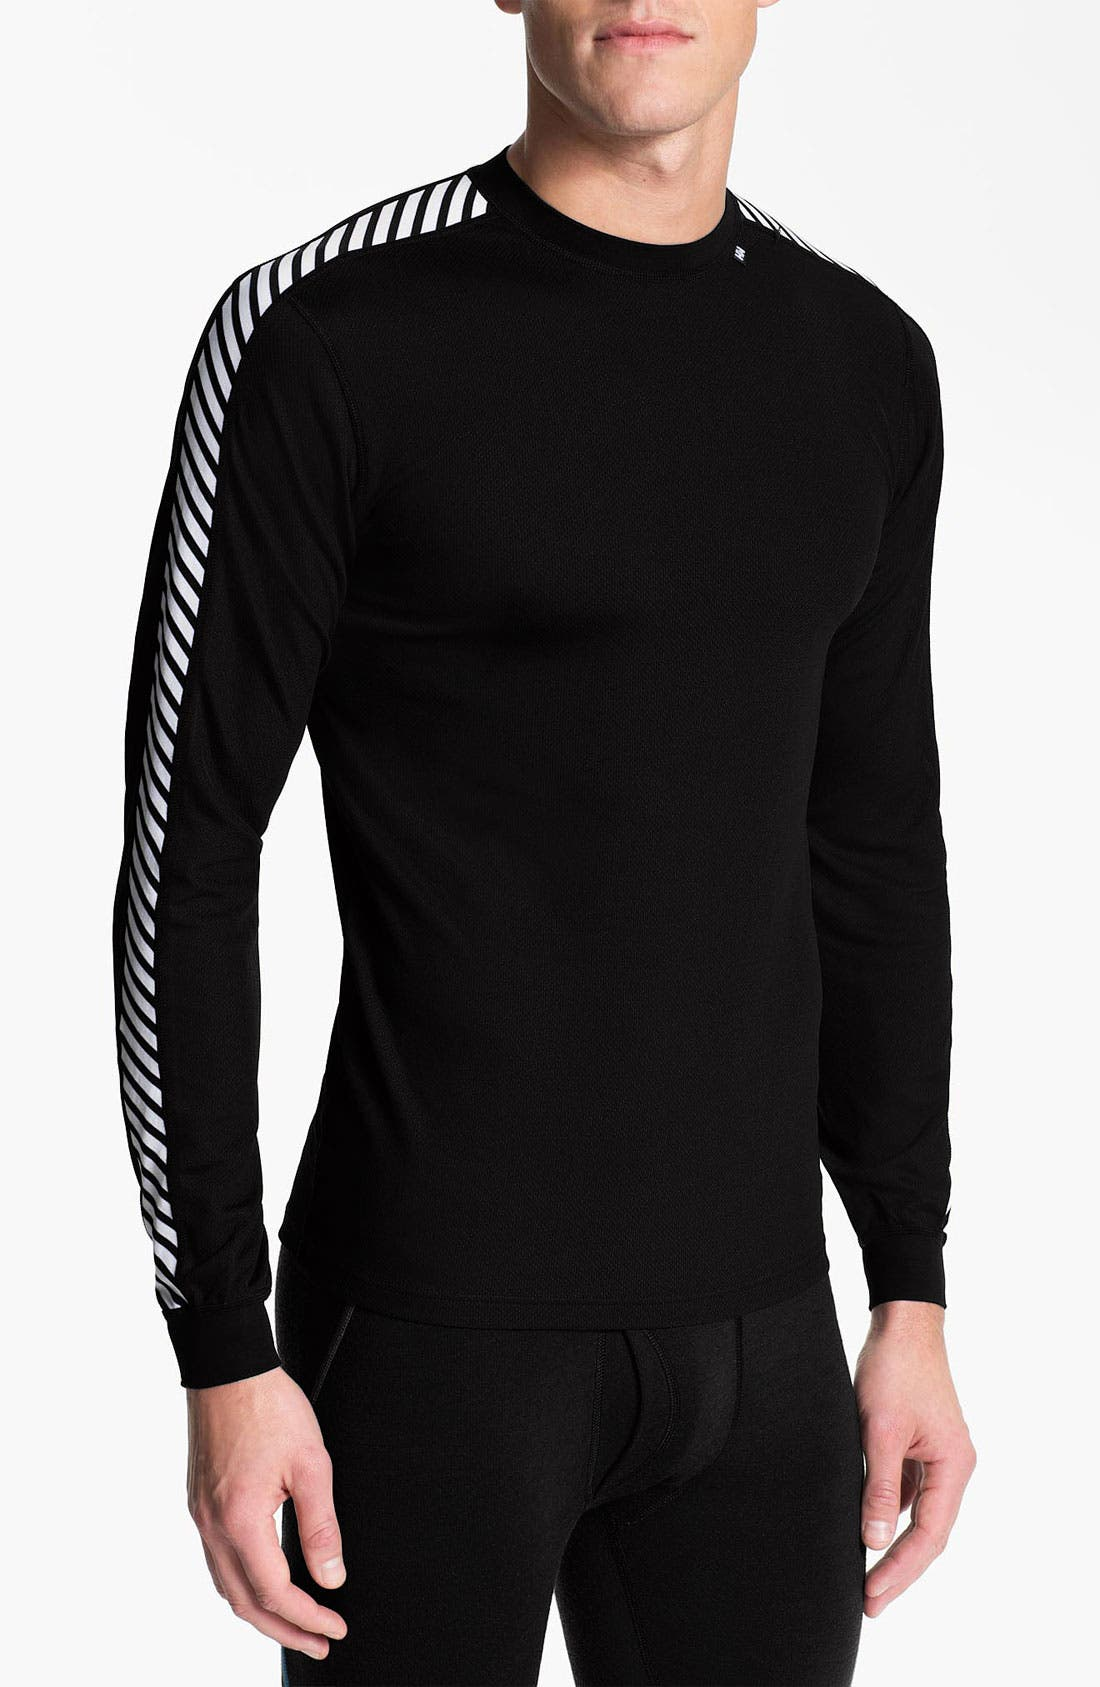 Main Image - Helly Hansen 'H/H® Dry - Stripe' Crewneck Top (Online Exclusive)